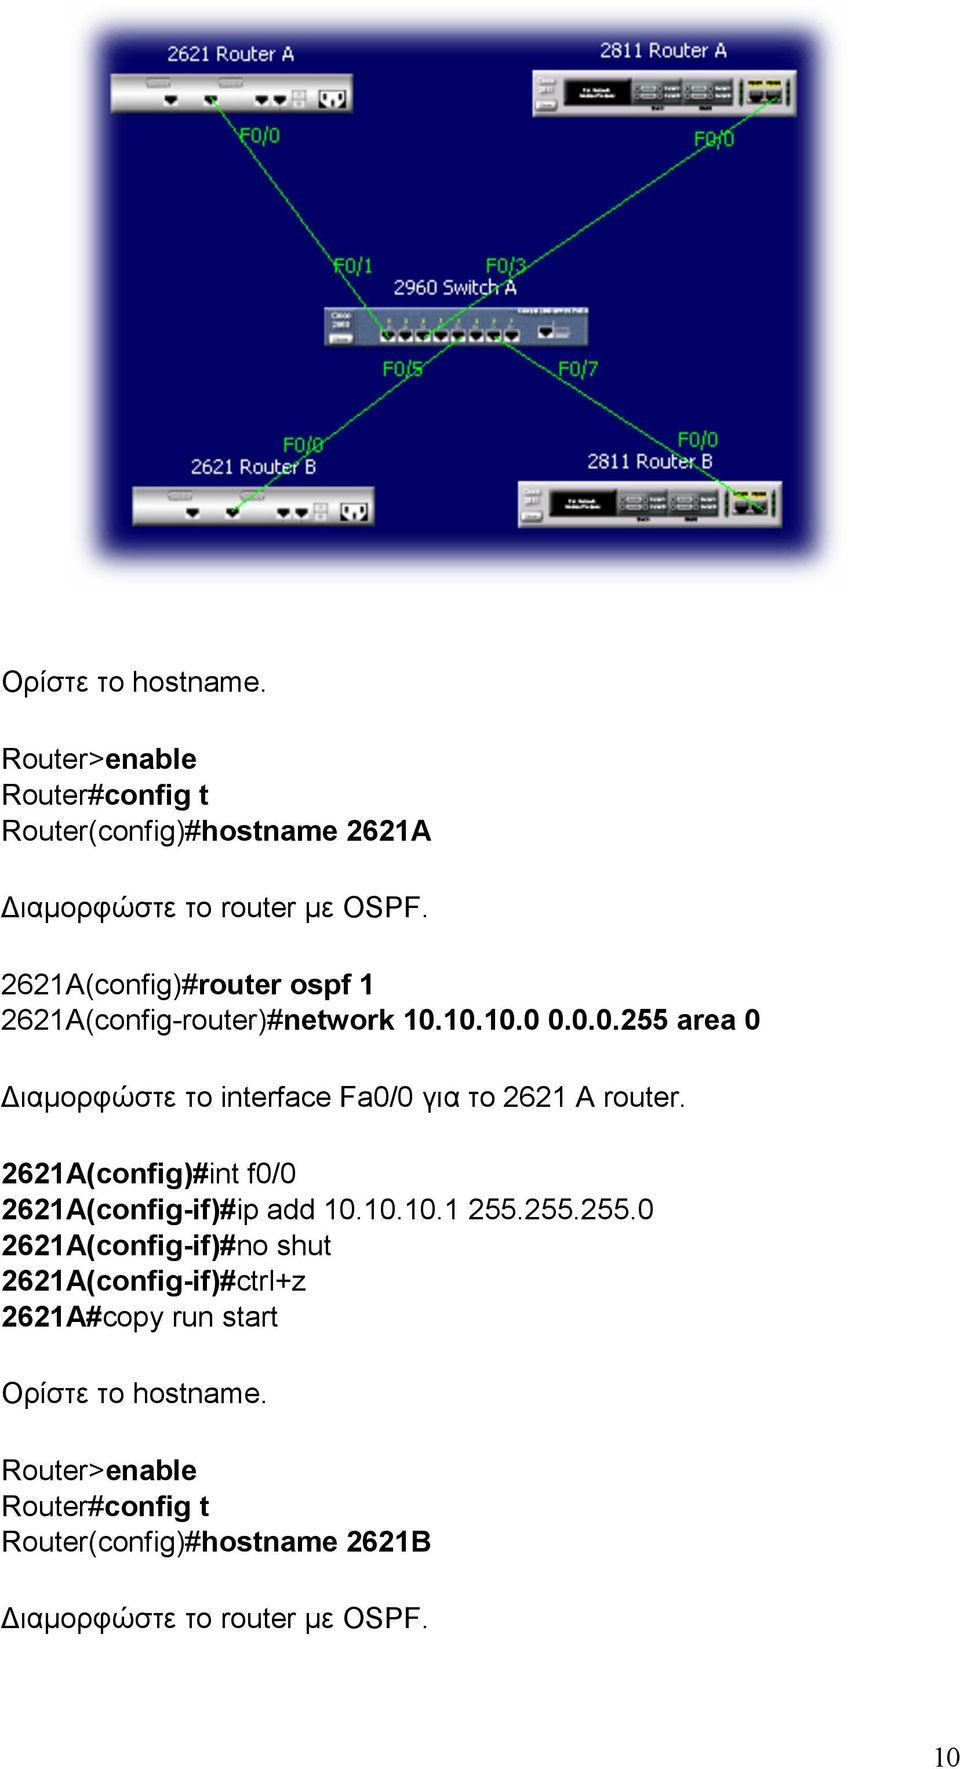 2621A(config)#int f0/0 2621A(config-if)#ip add 10.10.10.1 255.